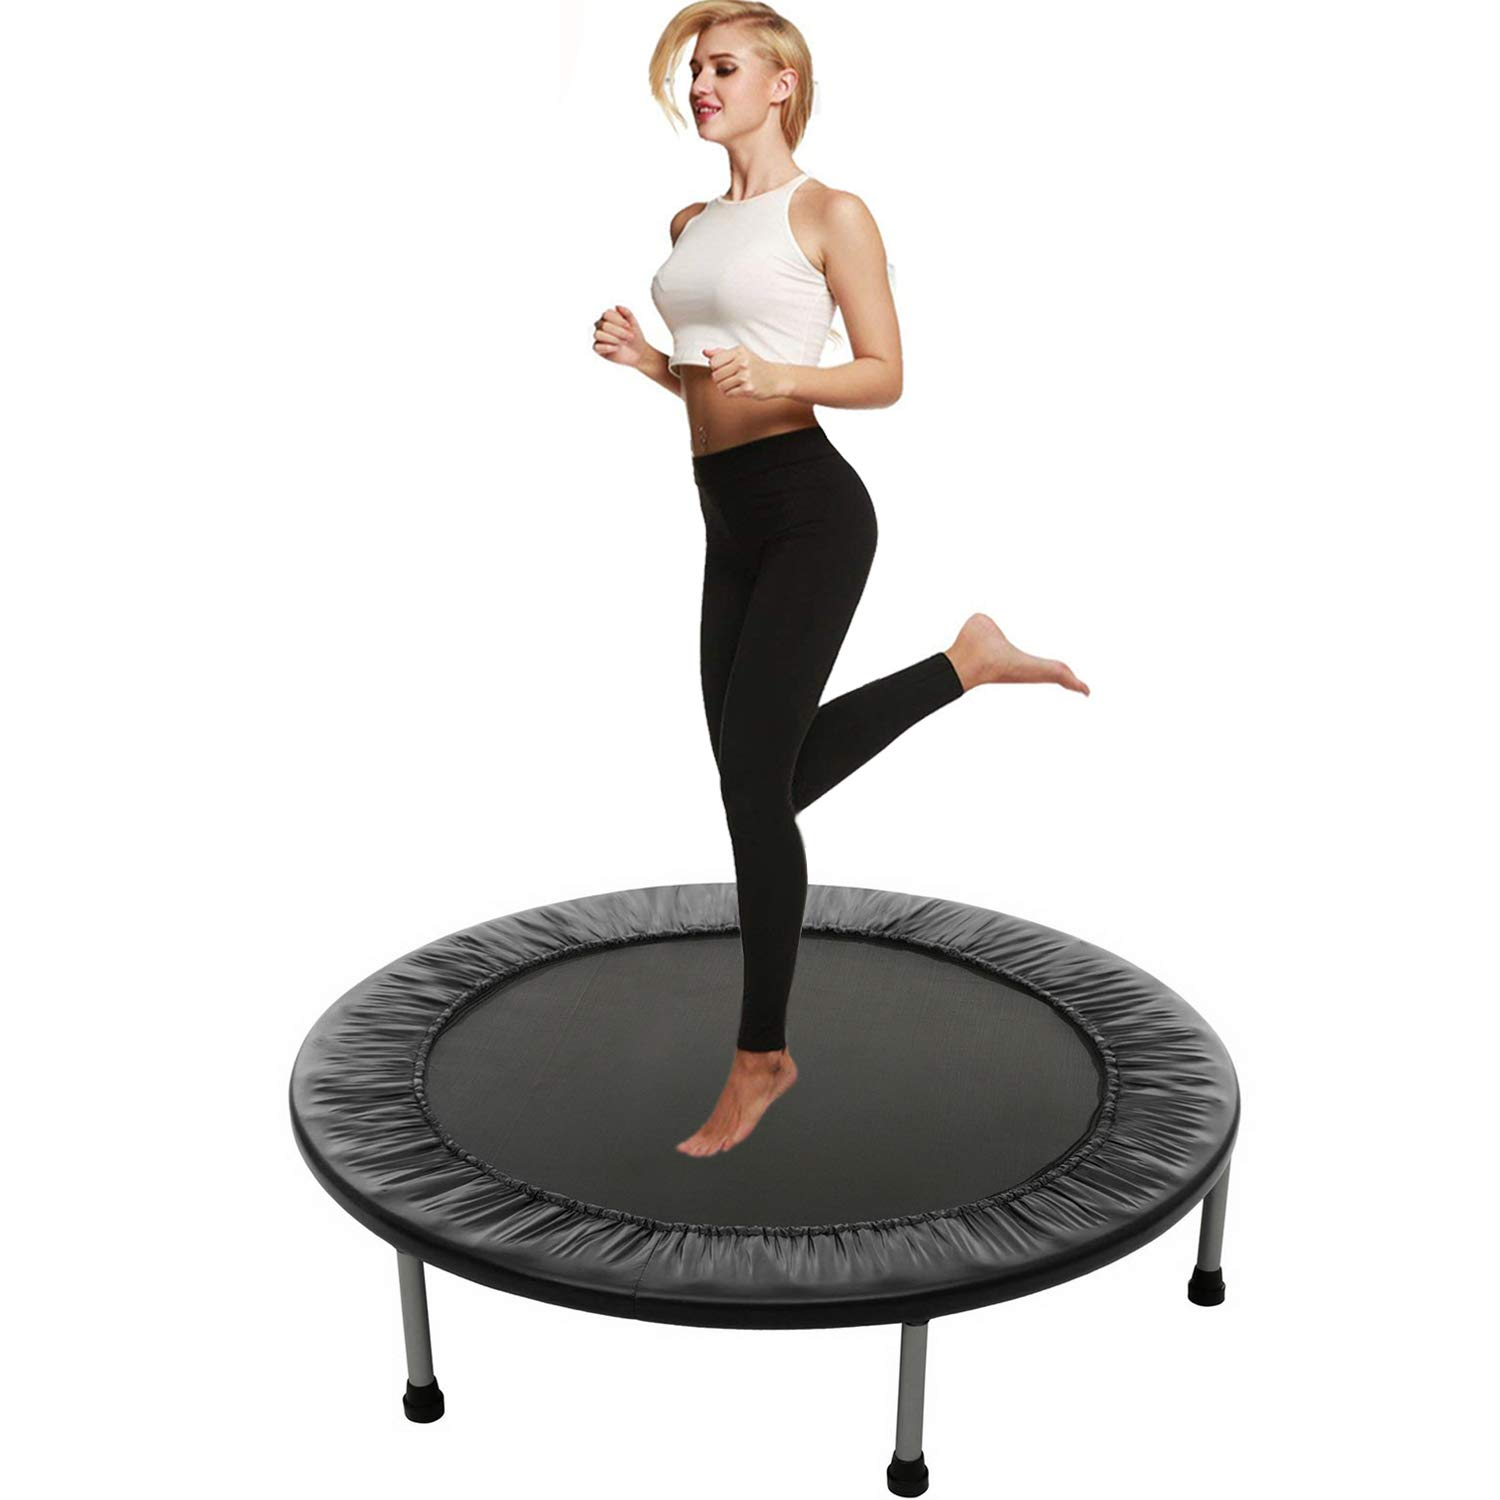 Balanu Mini Exercise Trampoline for Adults or Kids - Indoor Fitness Rebounder Trampoline with Safety Pad | Max. Load 220LBS (Black-38In-Foldable Twice)